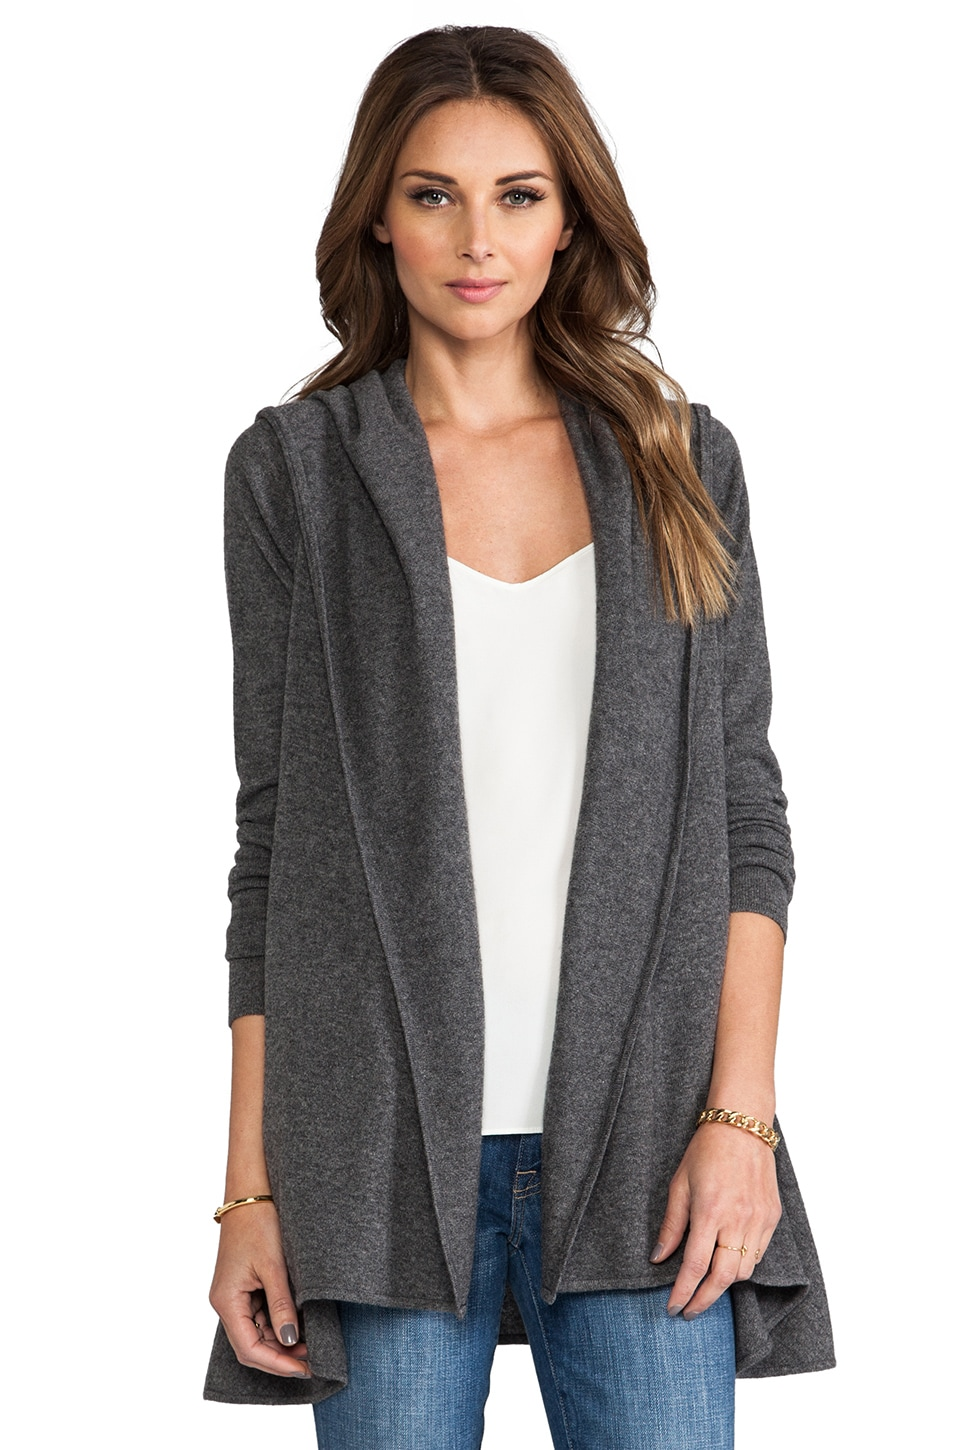 women cardigan for vince s cashmere cardigans coat hooded drape drapes